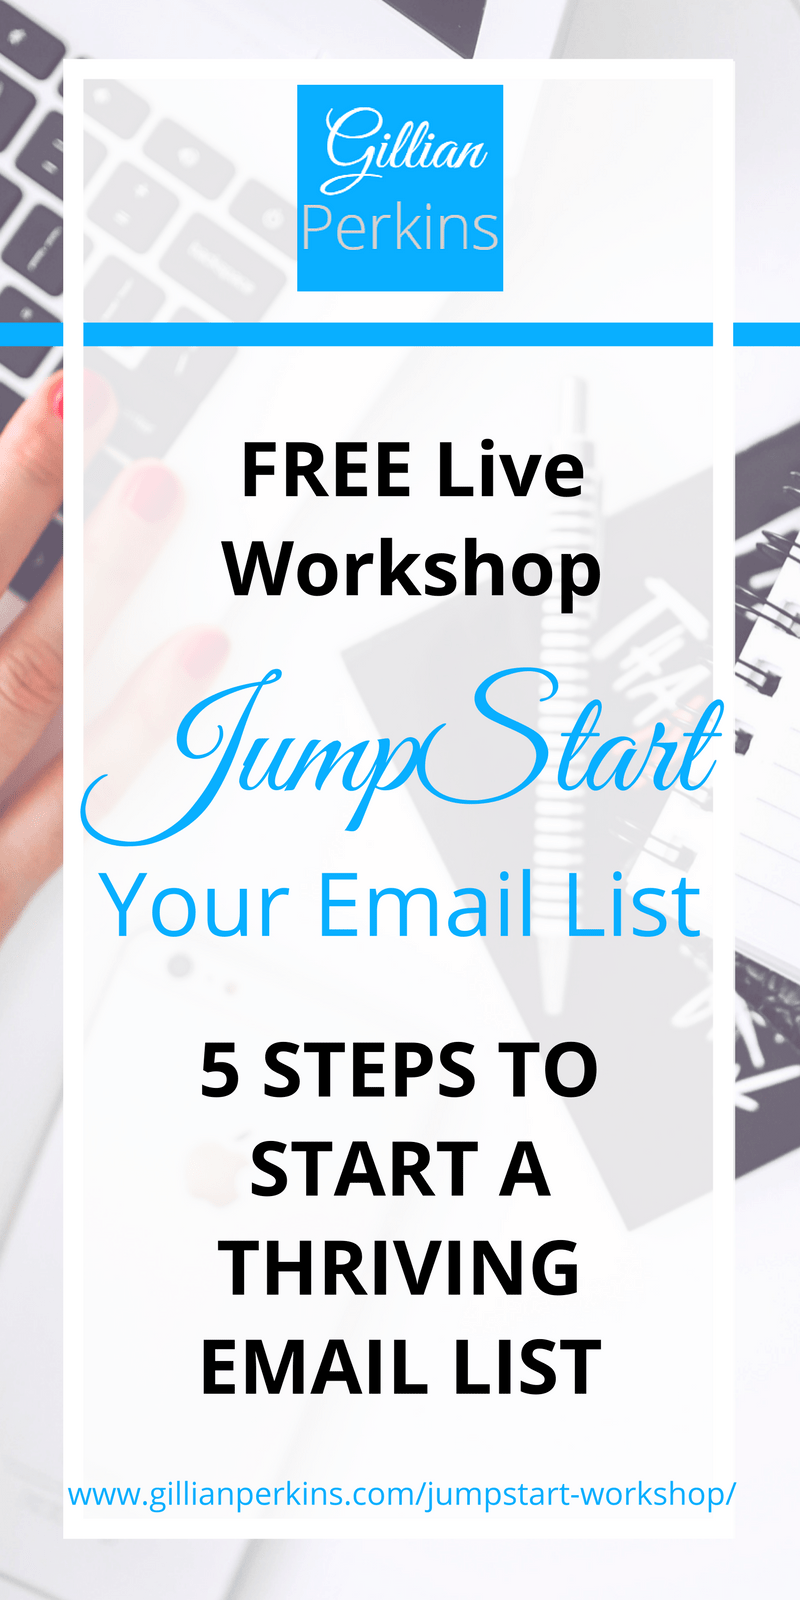 Free Workshop! JumpStart Your Email List